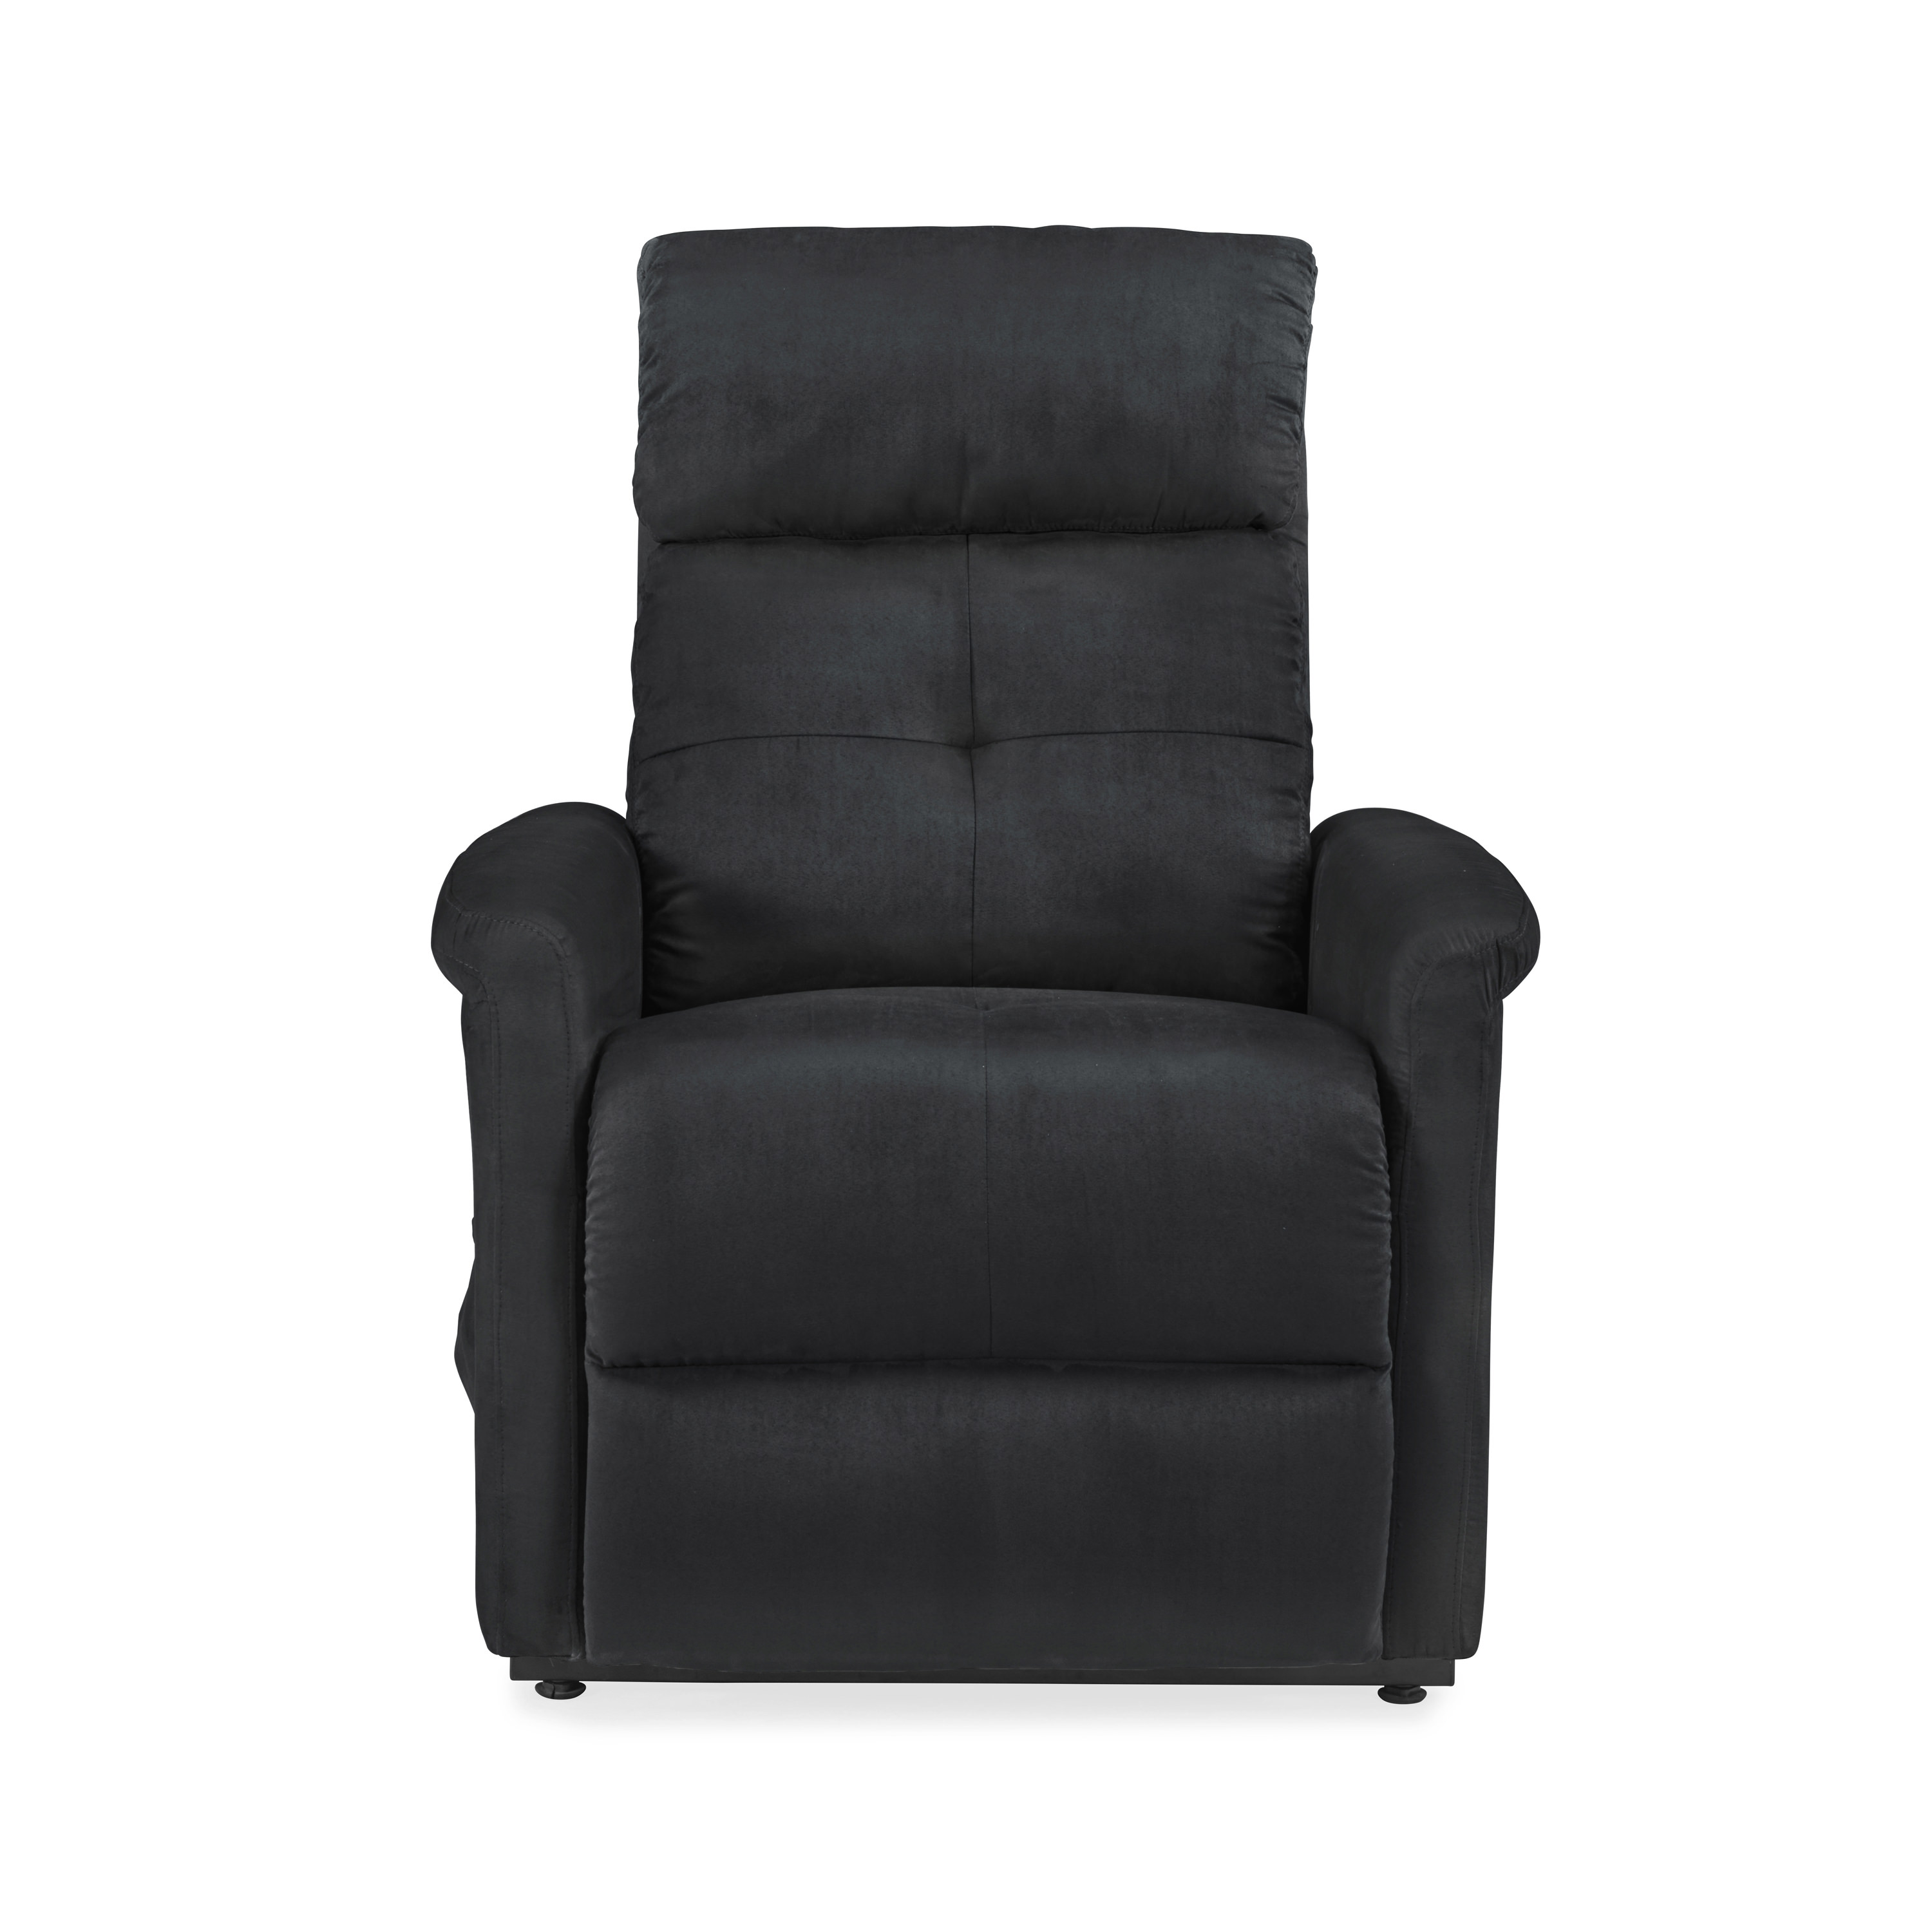 Recliner Toronto Toronto Power Recline And Lift Chair In Black Microfiber